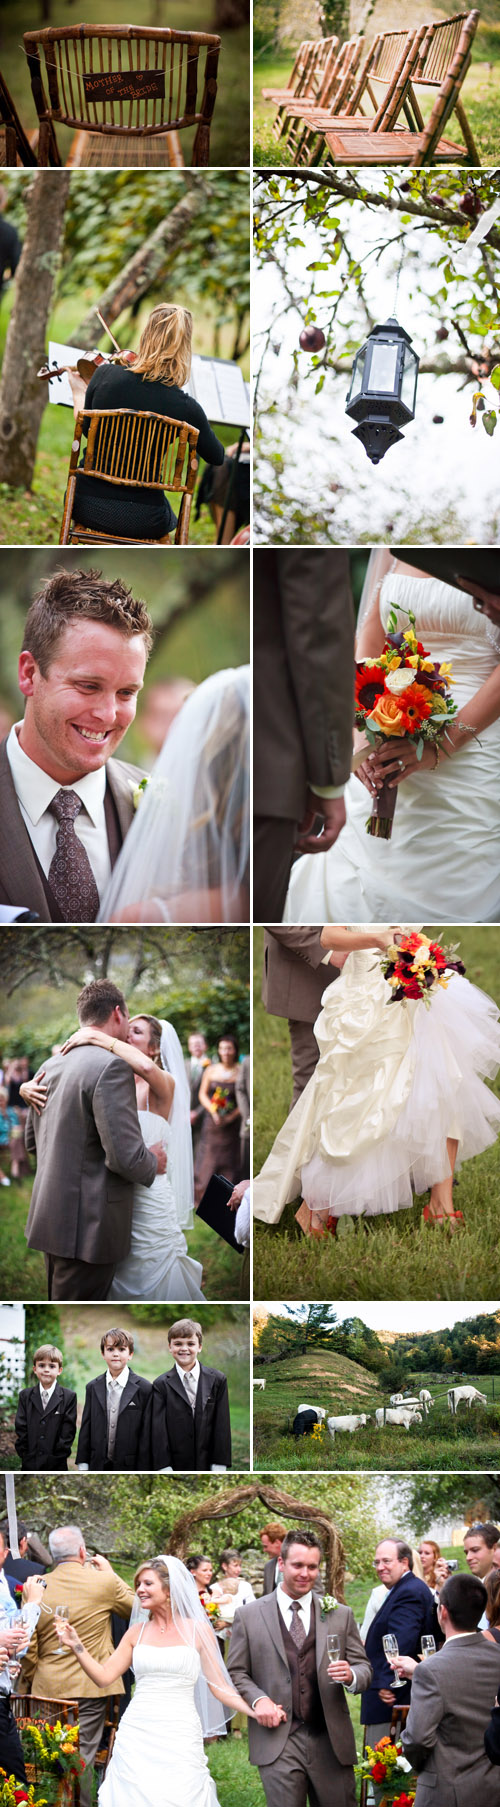 rustic fall colors apple orchard wedding at Old Orchard Creek in Lansing, North Carolina, wedding photos by Jeremie Barlow Photography